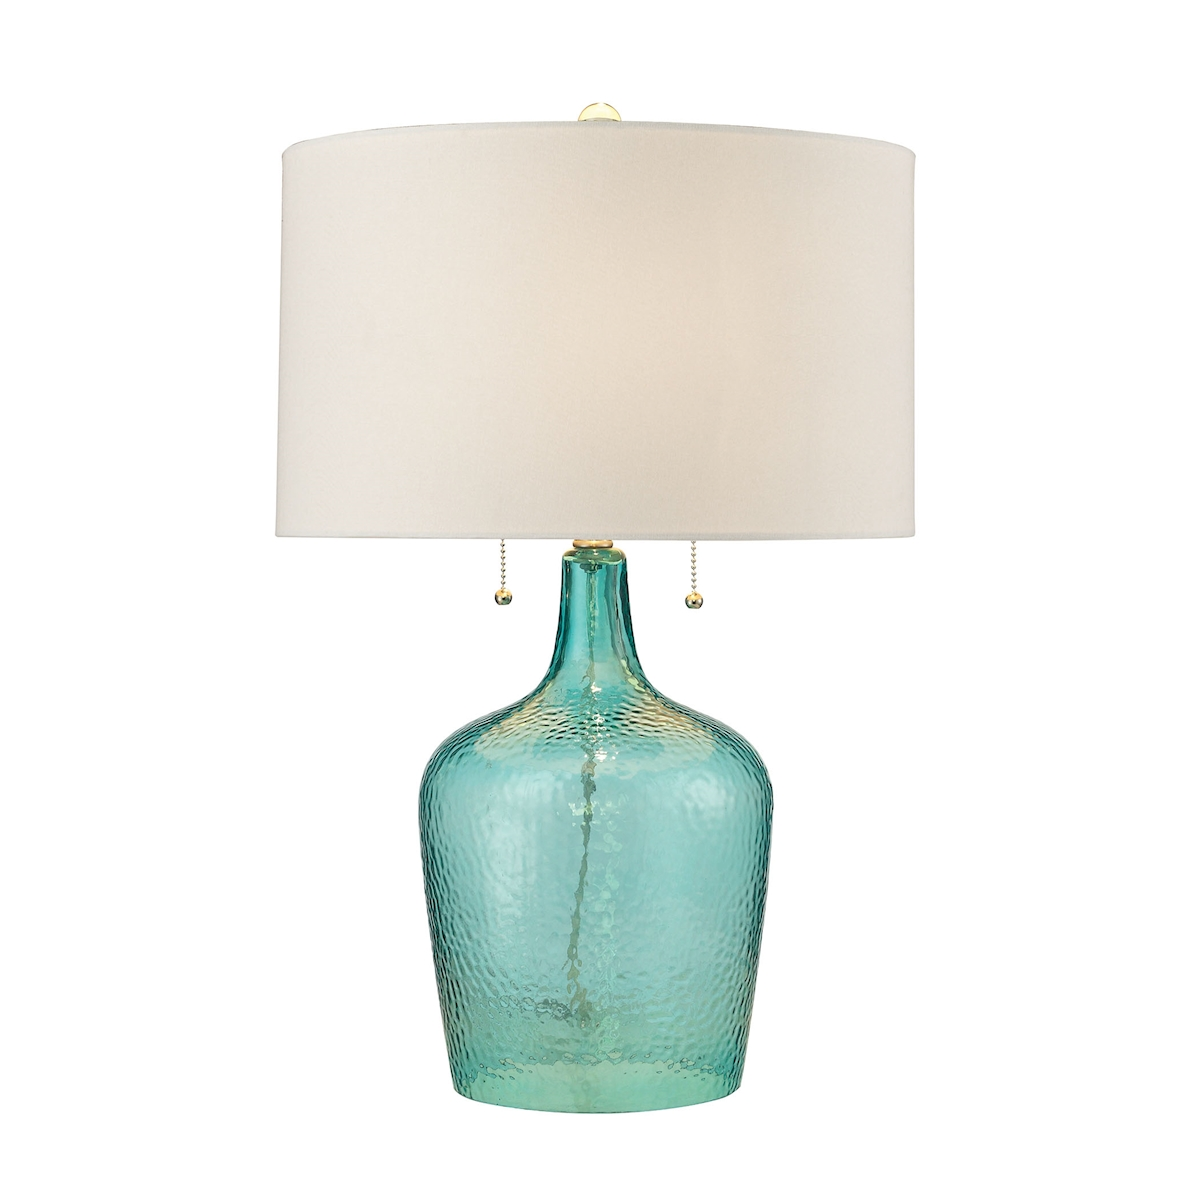 Dimond Hatteras 26 Hammered Glass Table Lamp in Seabreeze